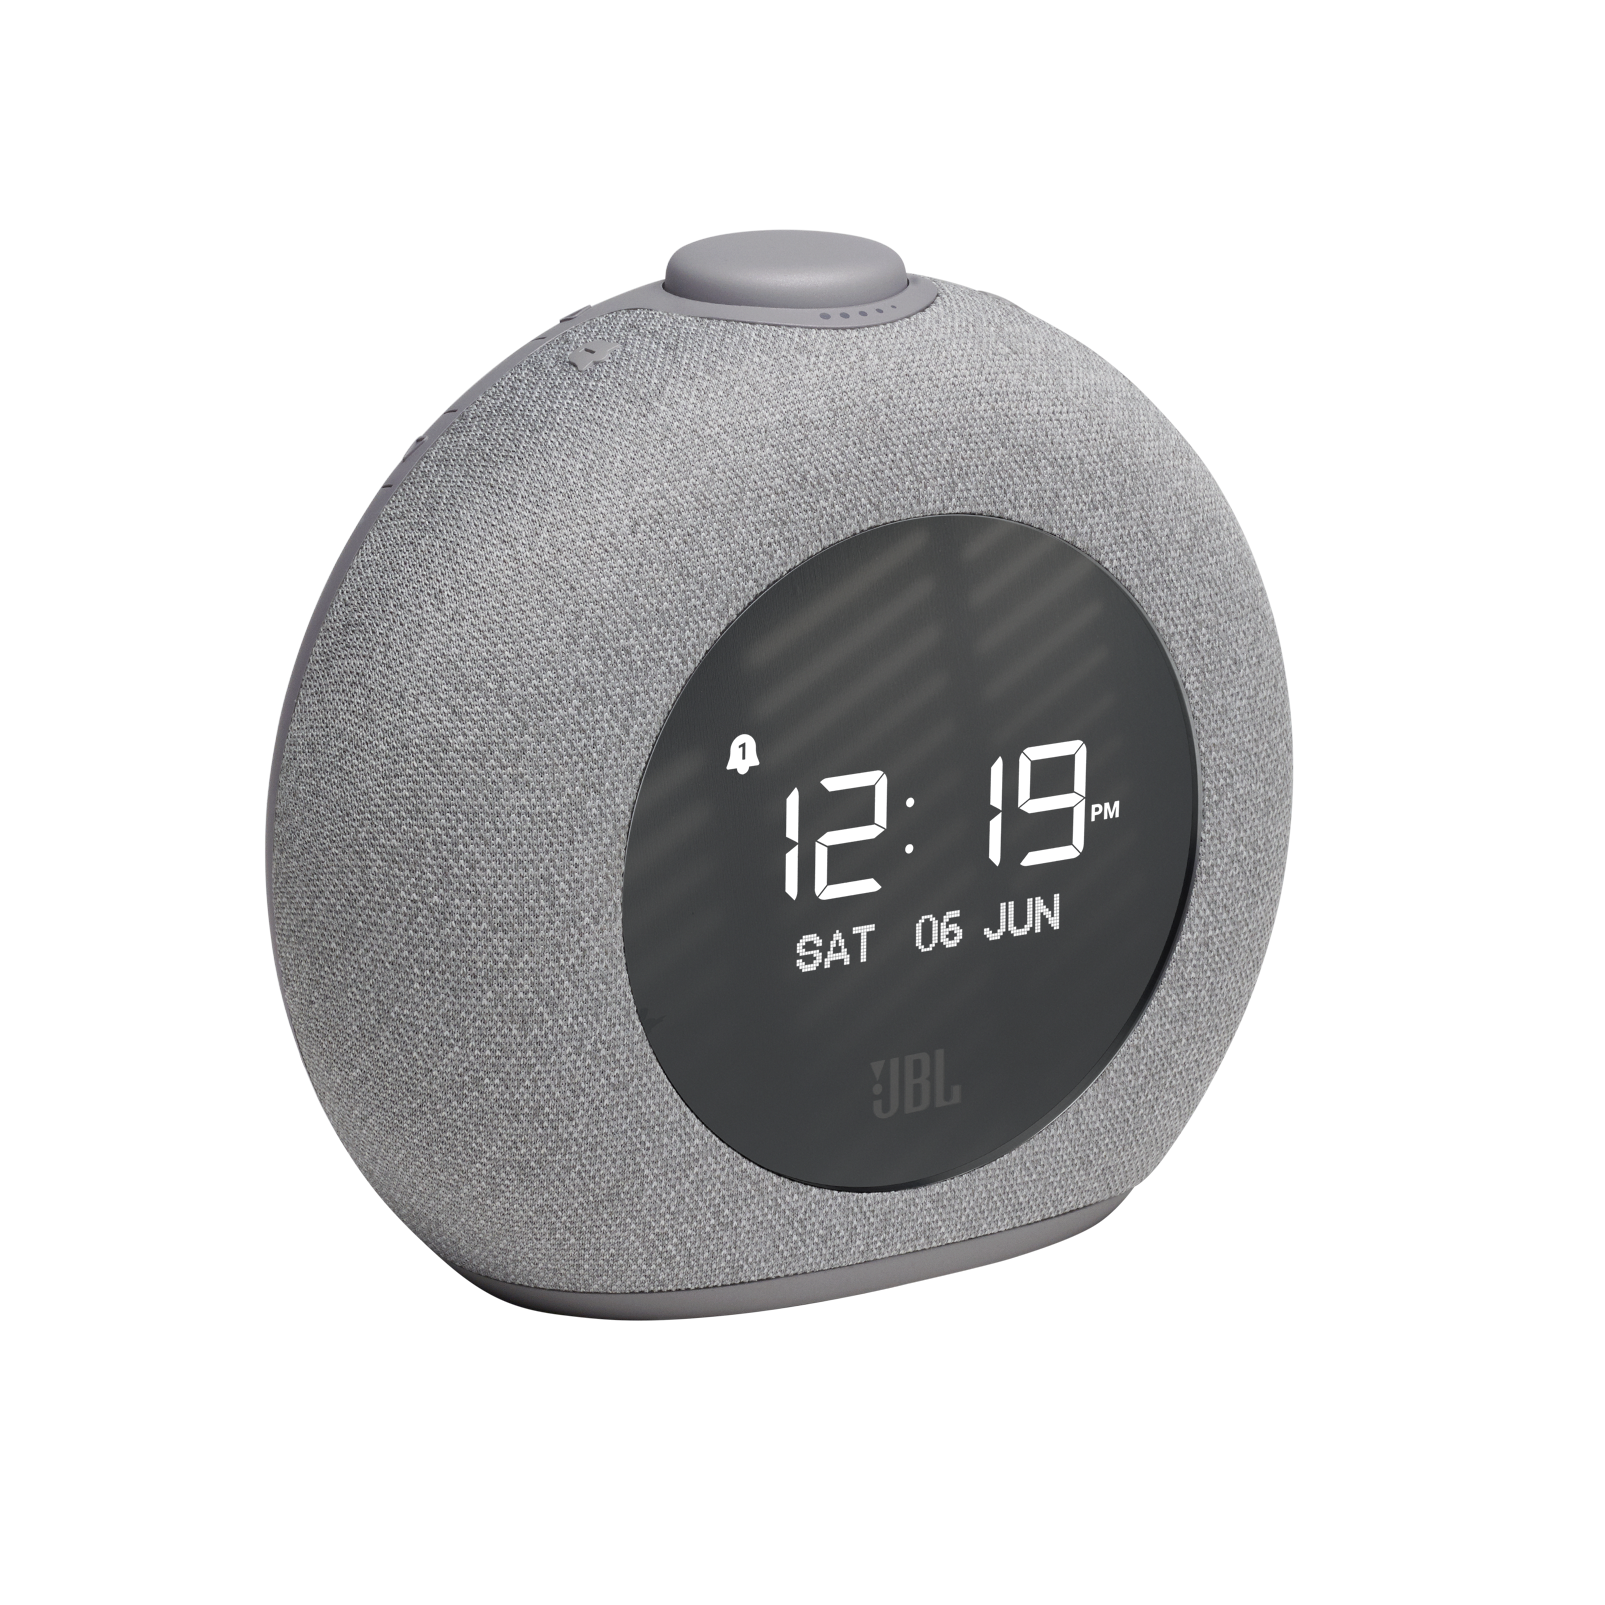 JBL Horizon 2 DAB - Grey - Bluetooth clock radio speaker with DAB/DAB+/FM - Hero